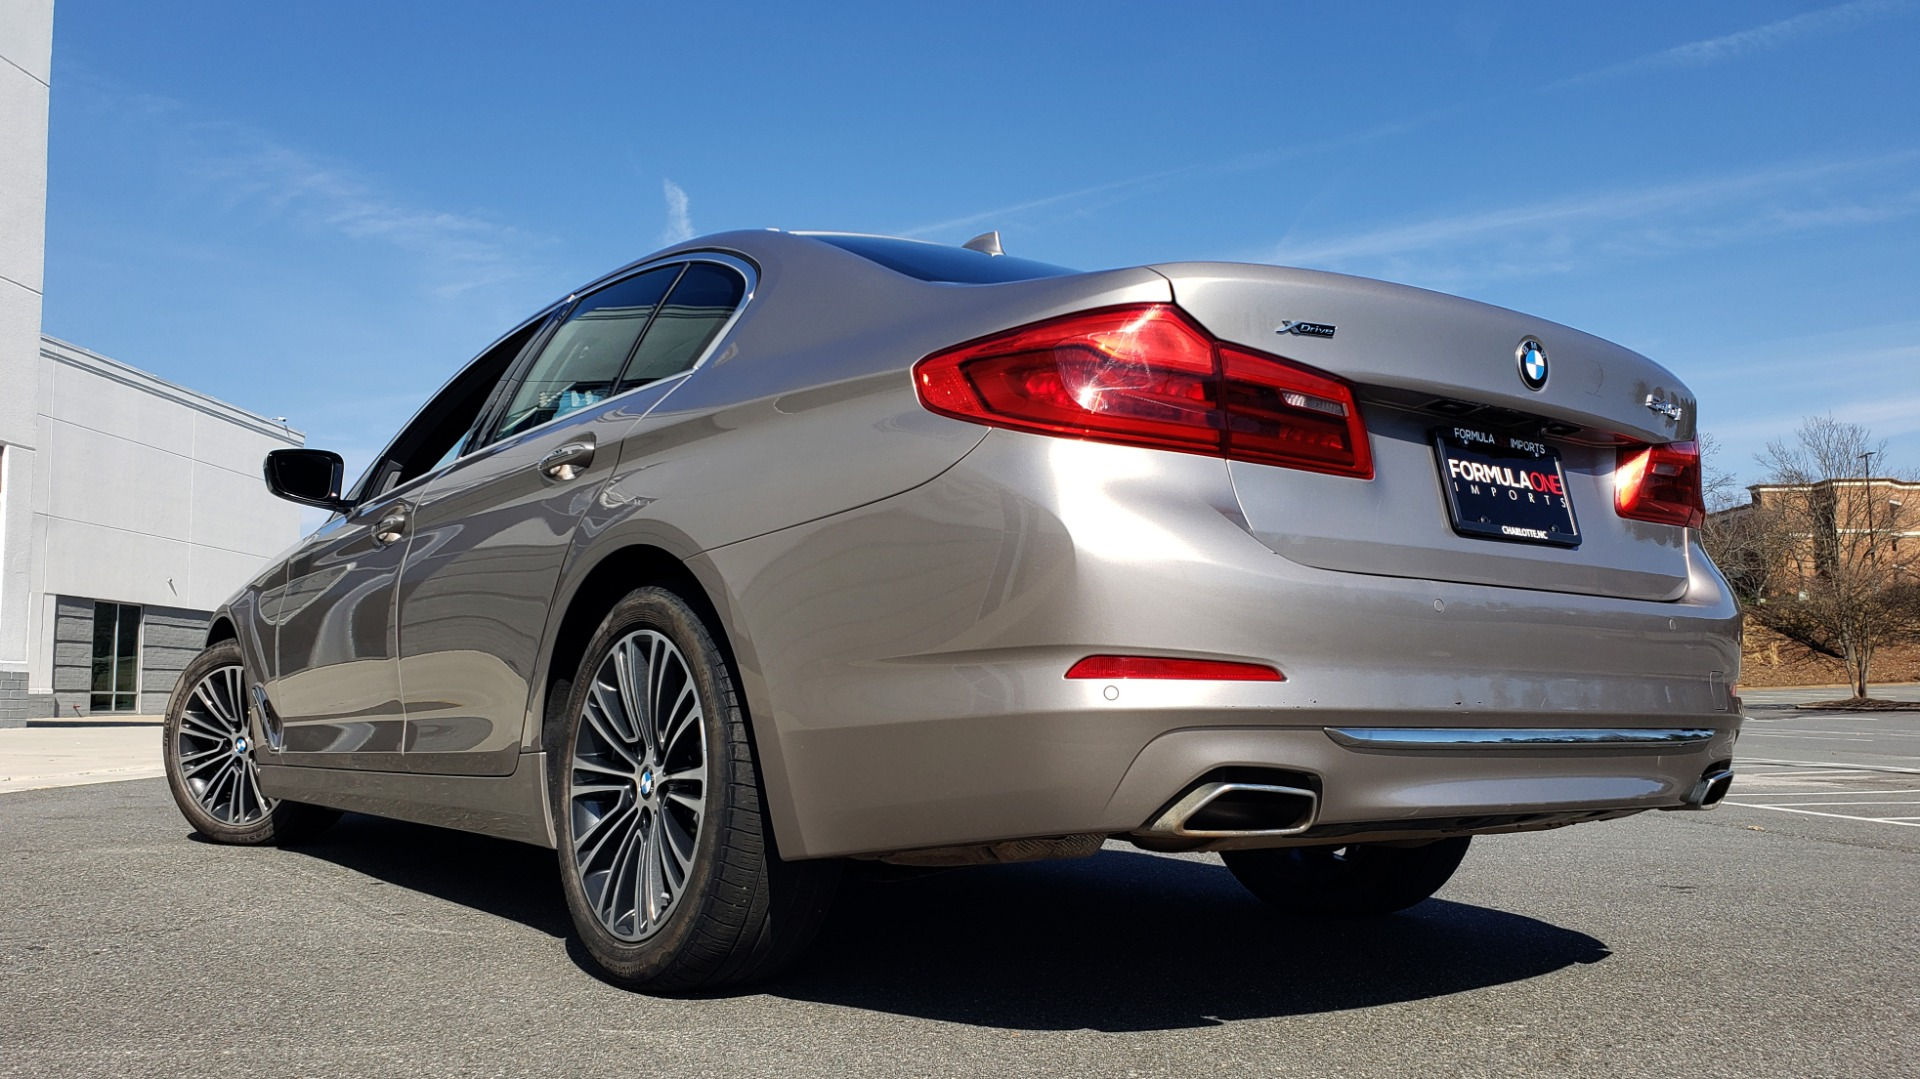 Used 2018 BMW 5 SERIES 540IXDRIVE PREMIUM / DRVR ASST PLUS / LUX PKG / APPLE CARPLAY for sale Sold at Formula Imports in Charlotte NC 28227 4